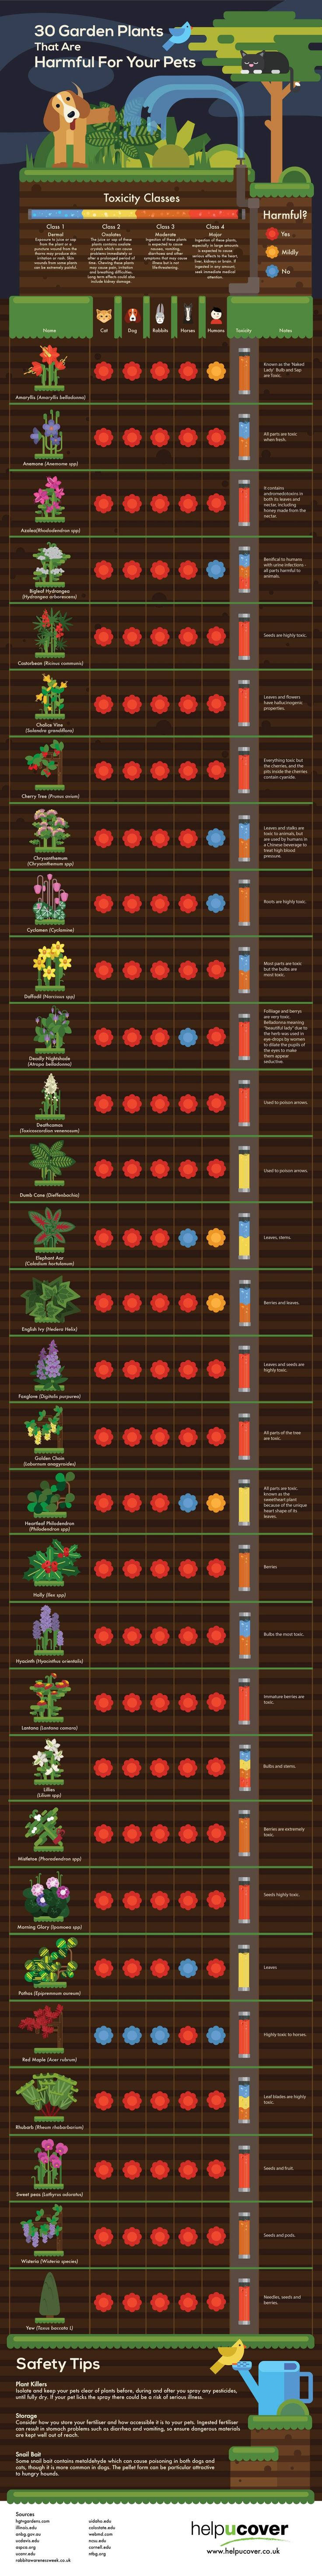 30 Garden Plants That Are Harmful For Pets Infographic.